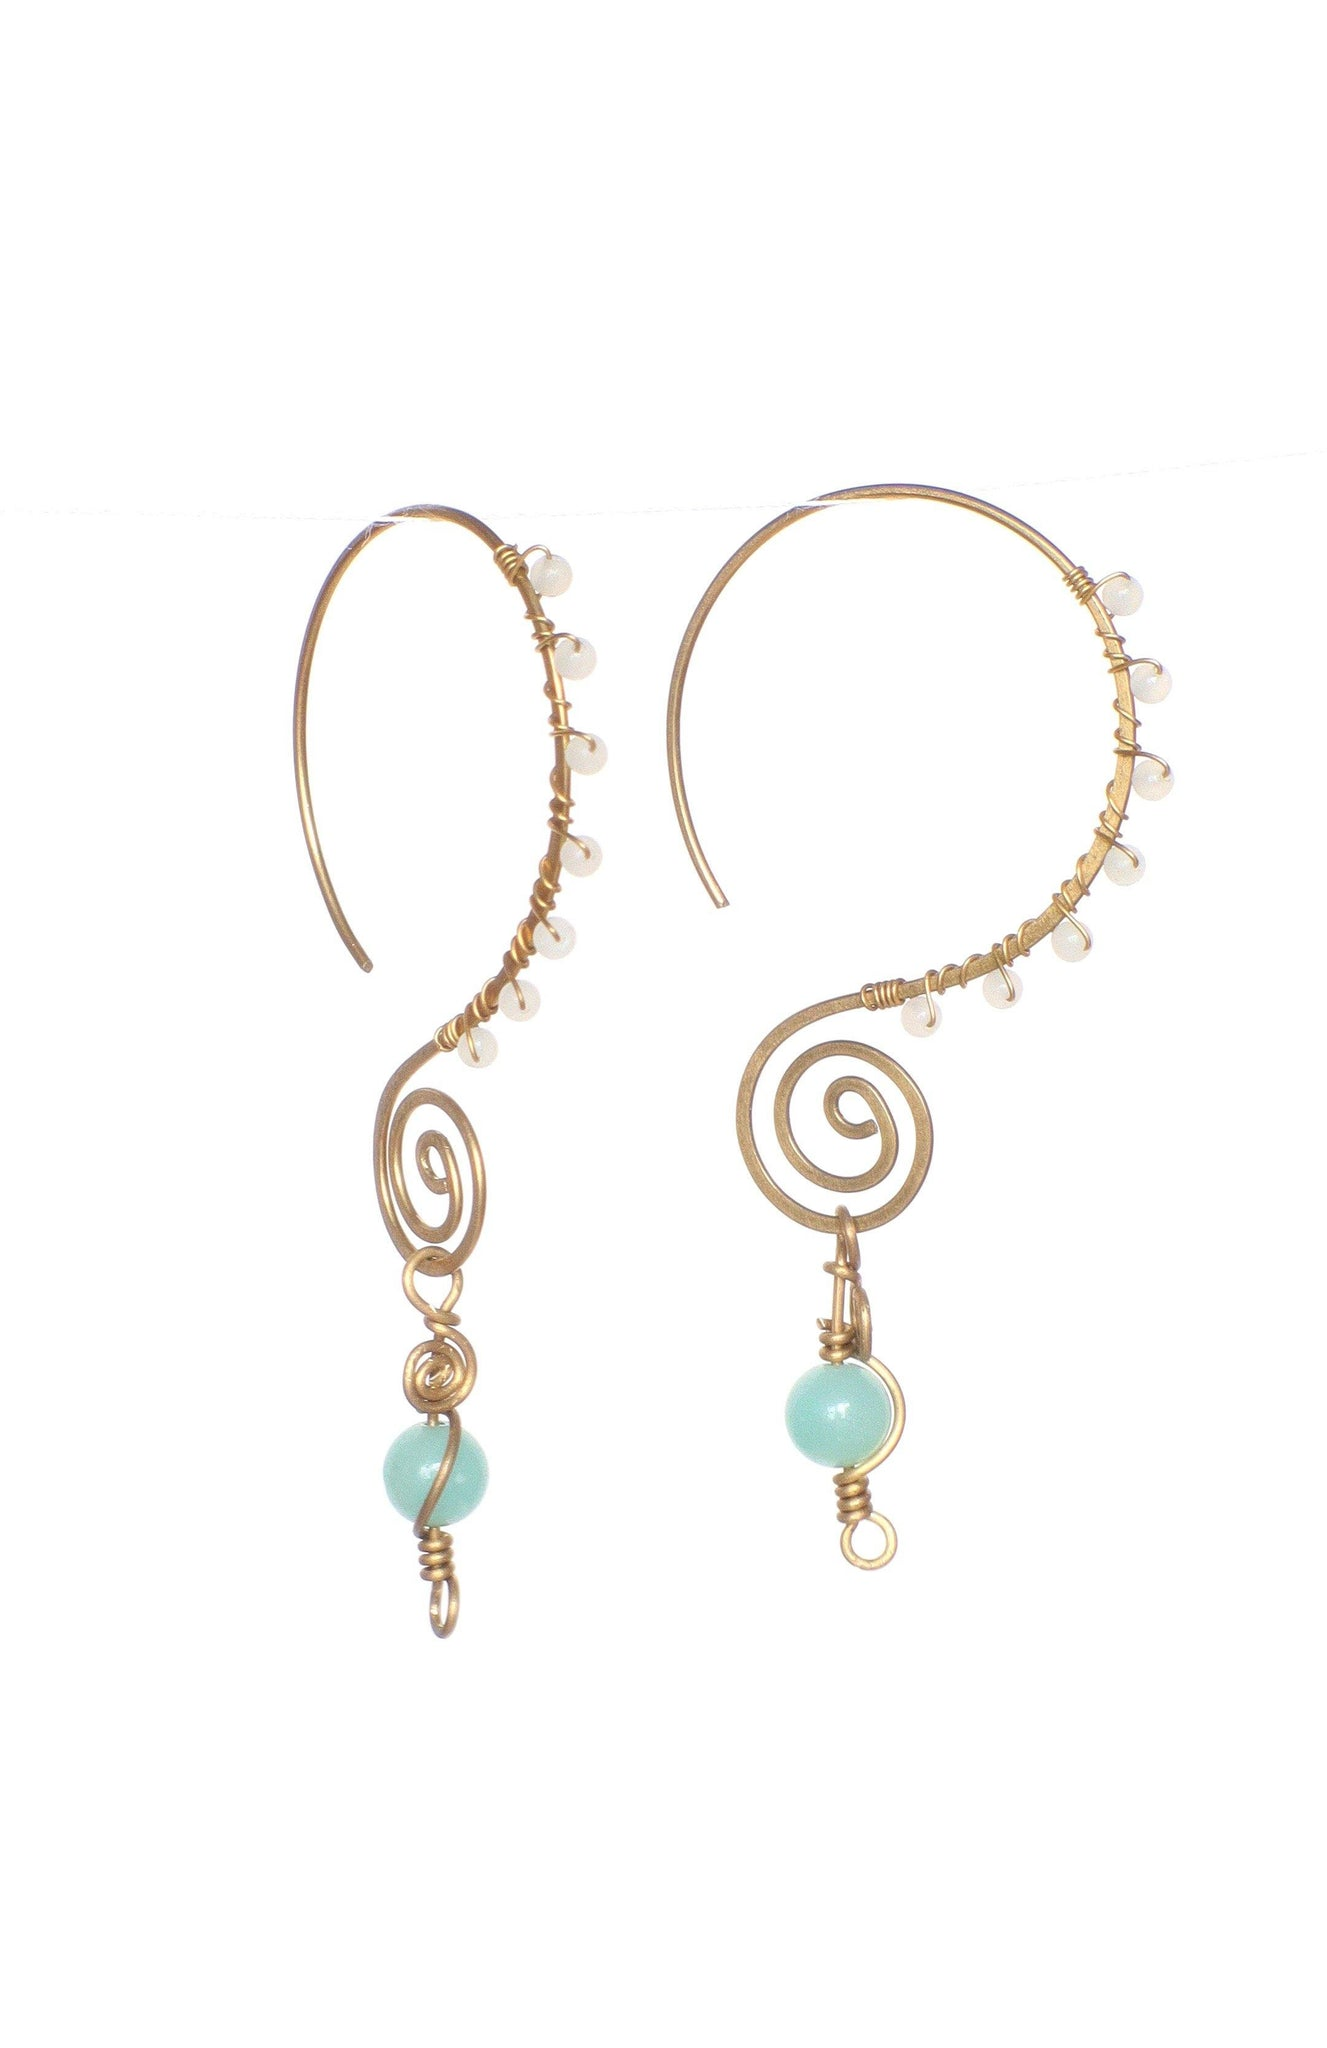 These handmade, brass, swirl earrings feature a fun infinity style hoop, wire wrapped with small gemstones, and finished with a larger aquamarine gemstone as a focal point. This product is handmade and fairtrade in Thailand.